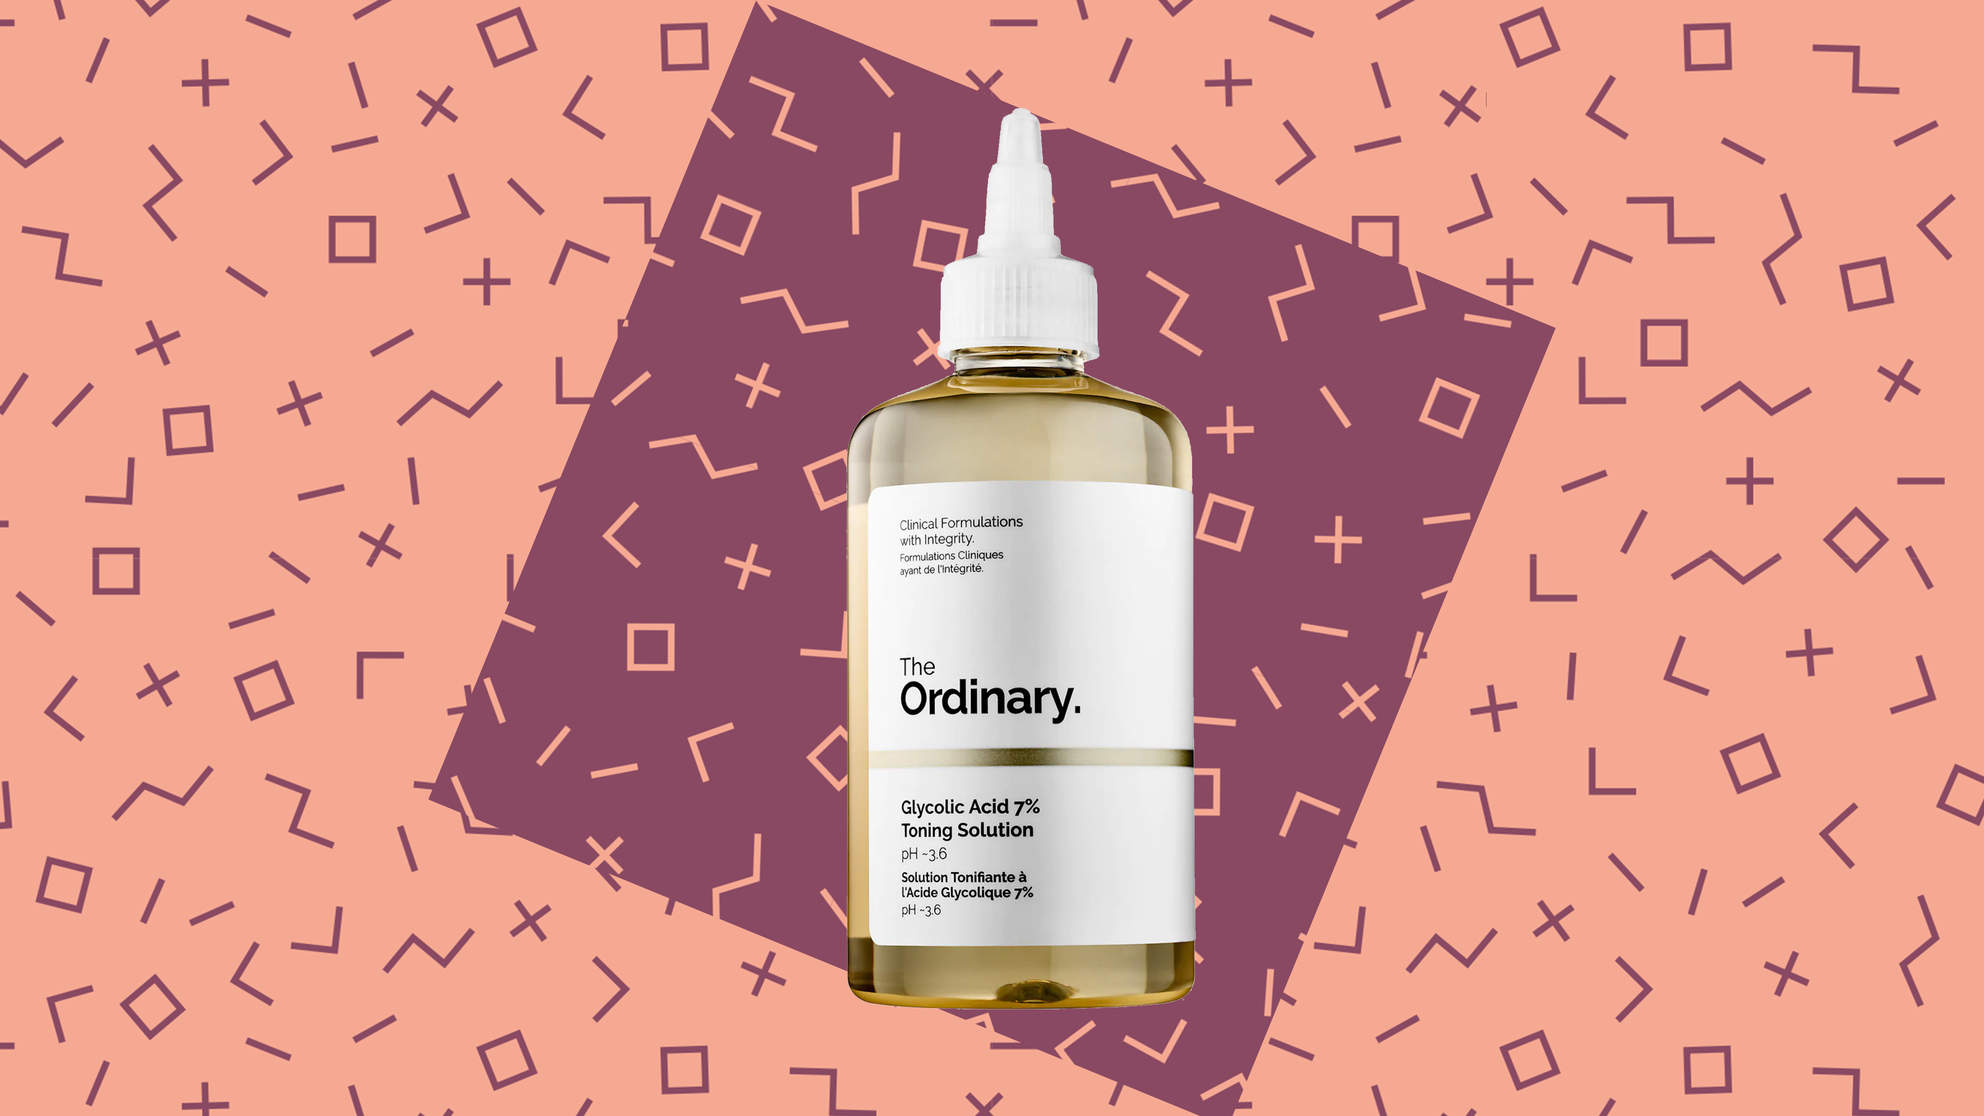 acne before-after woman health beauty dermatology skin product the-ordinary glycolic-acid